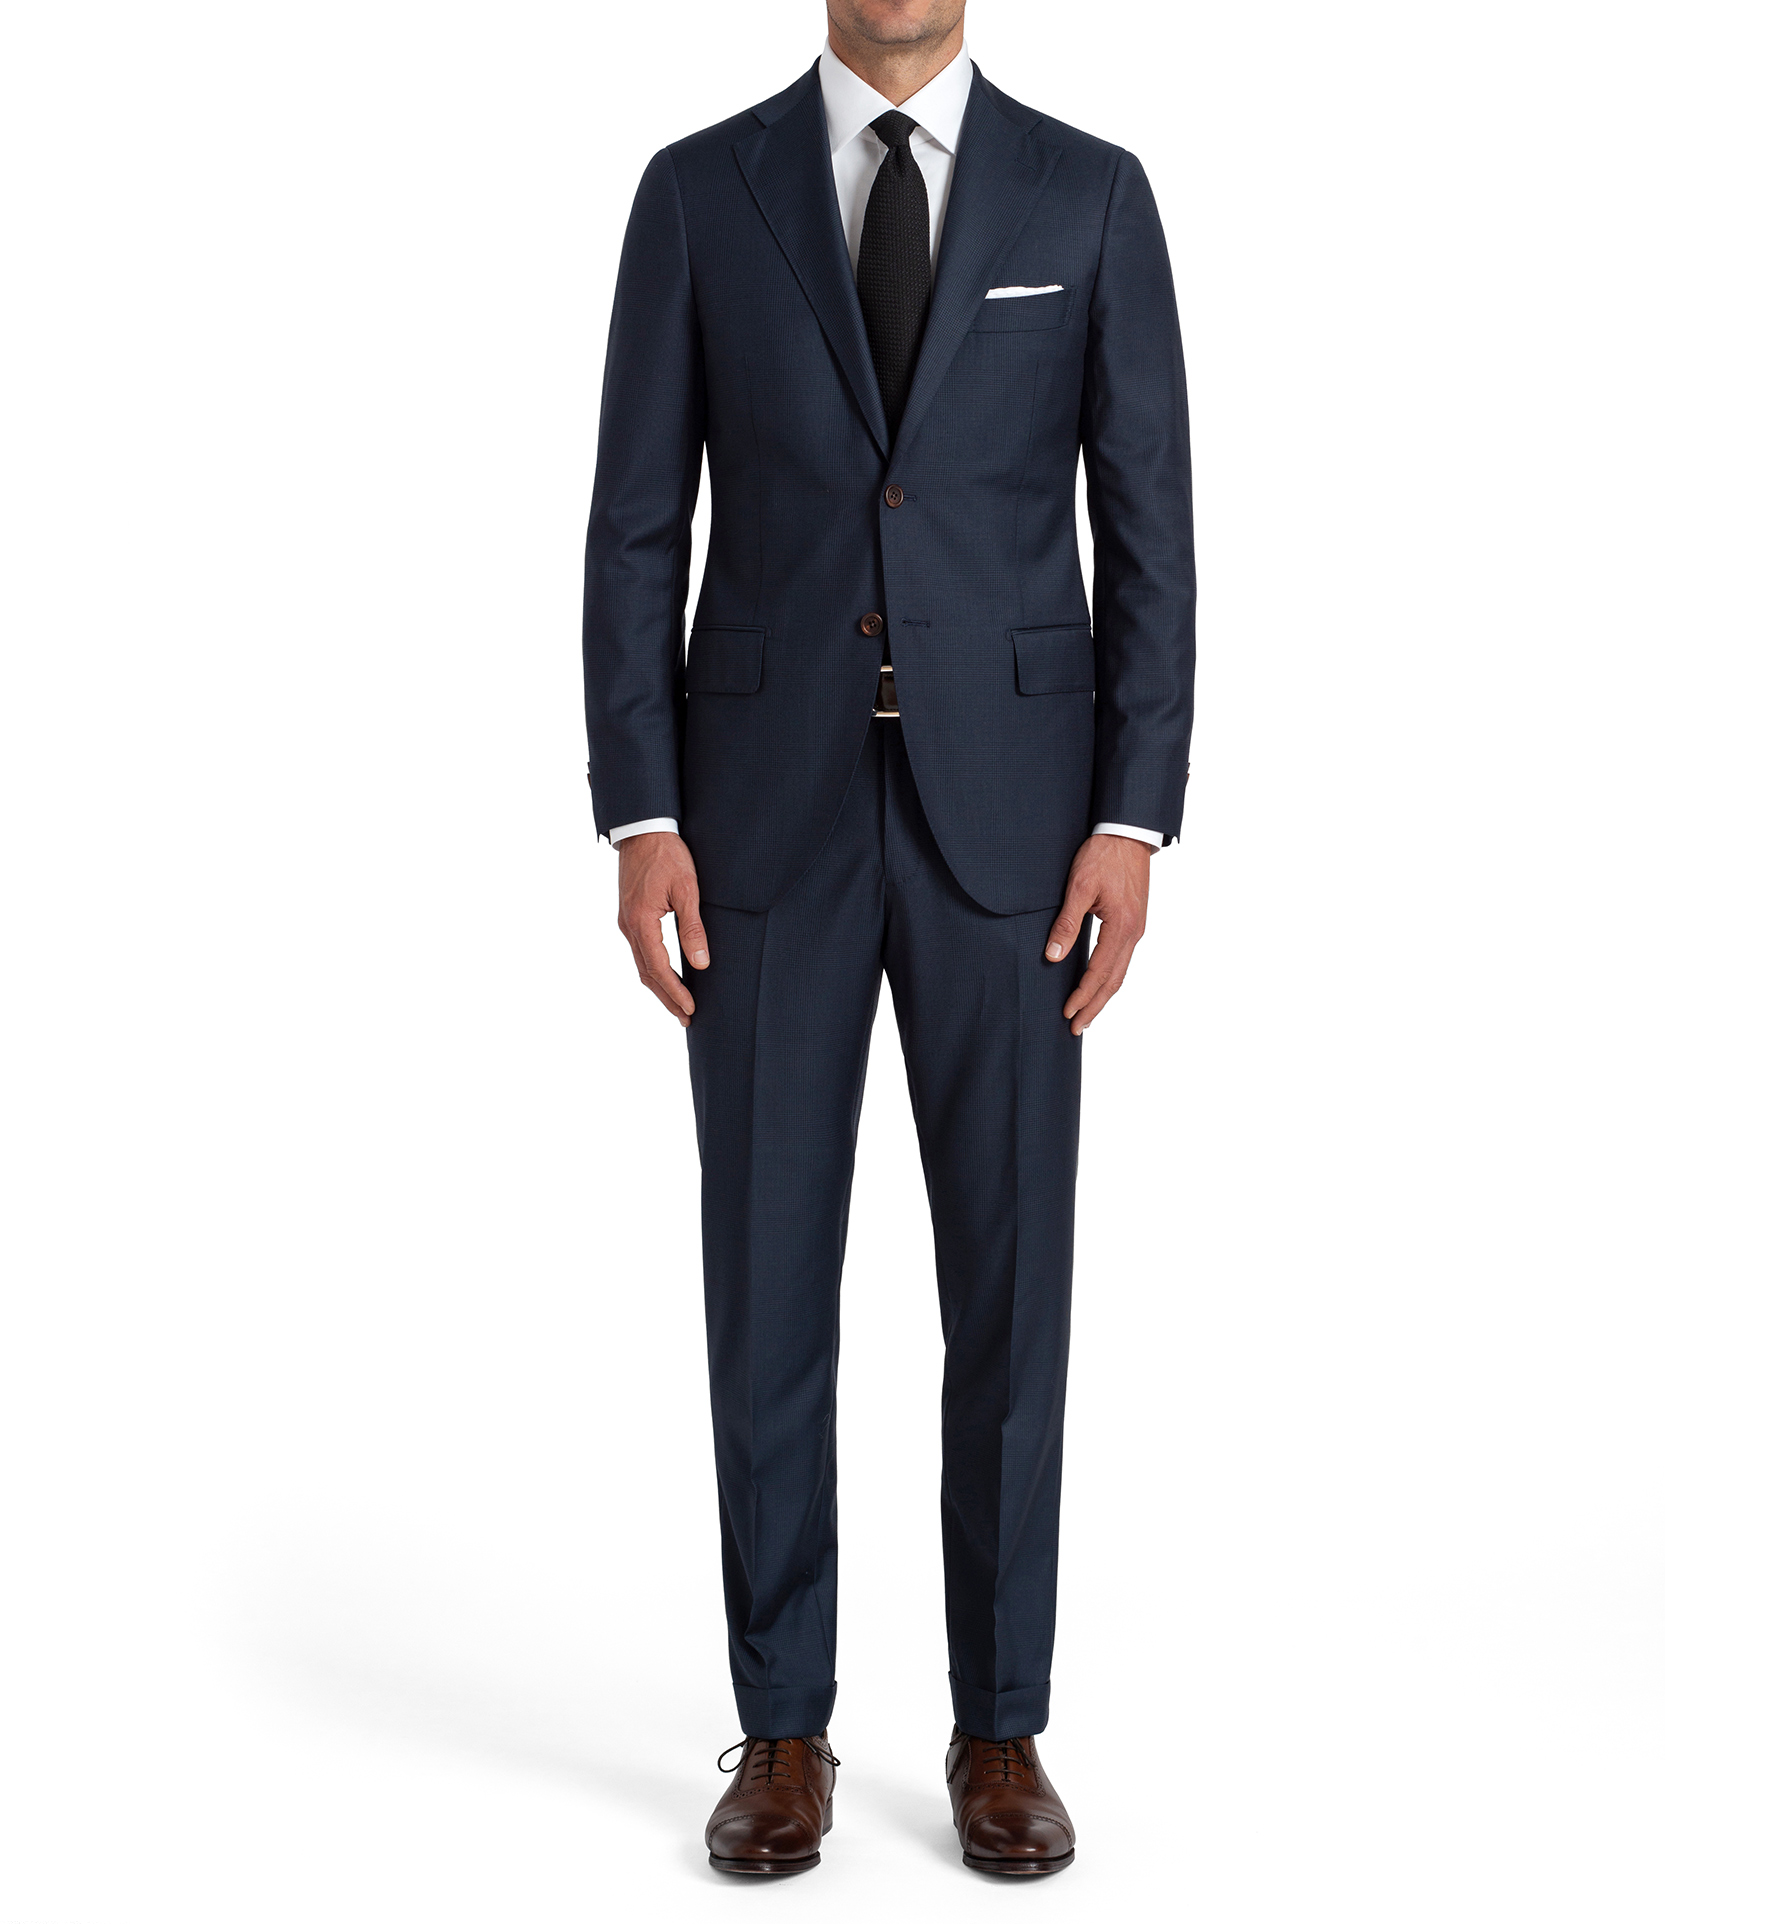 Zoom Image of Allen Navy S110s Glen Plaid Suit with Cuffed Trouser